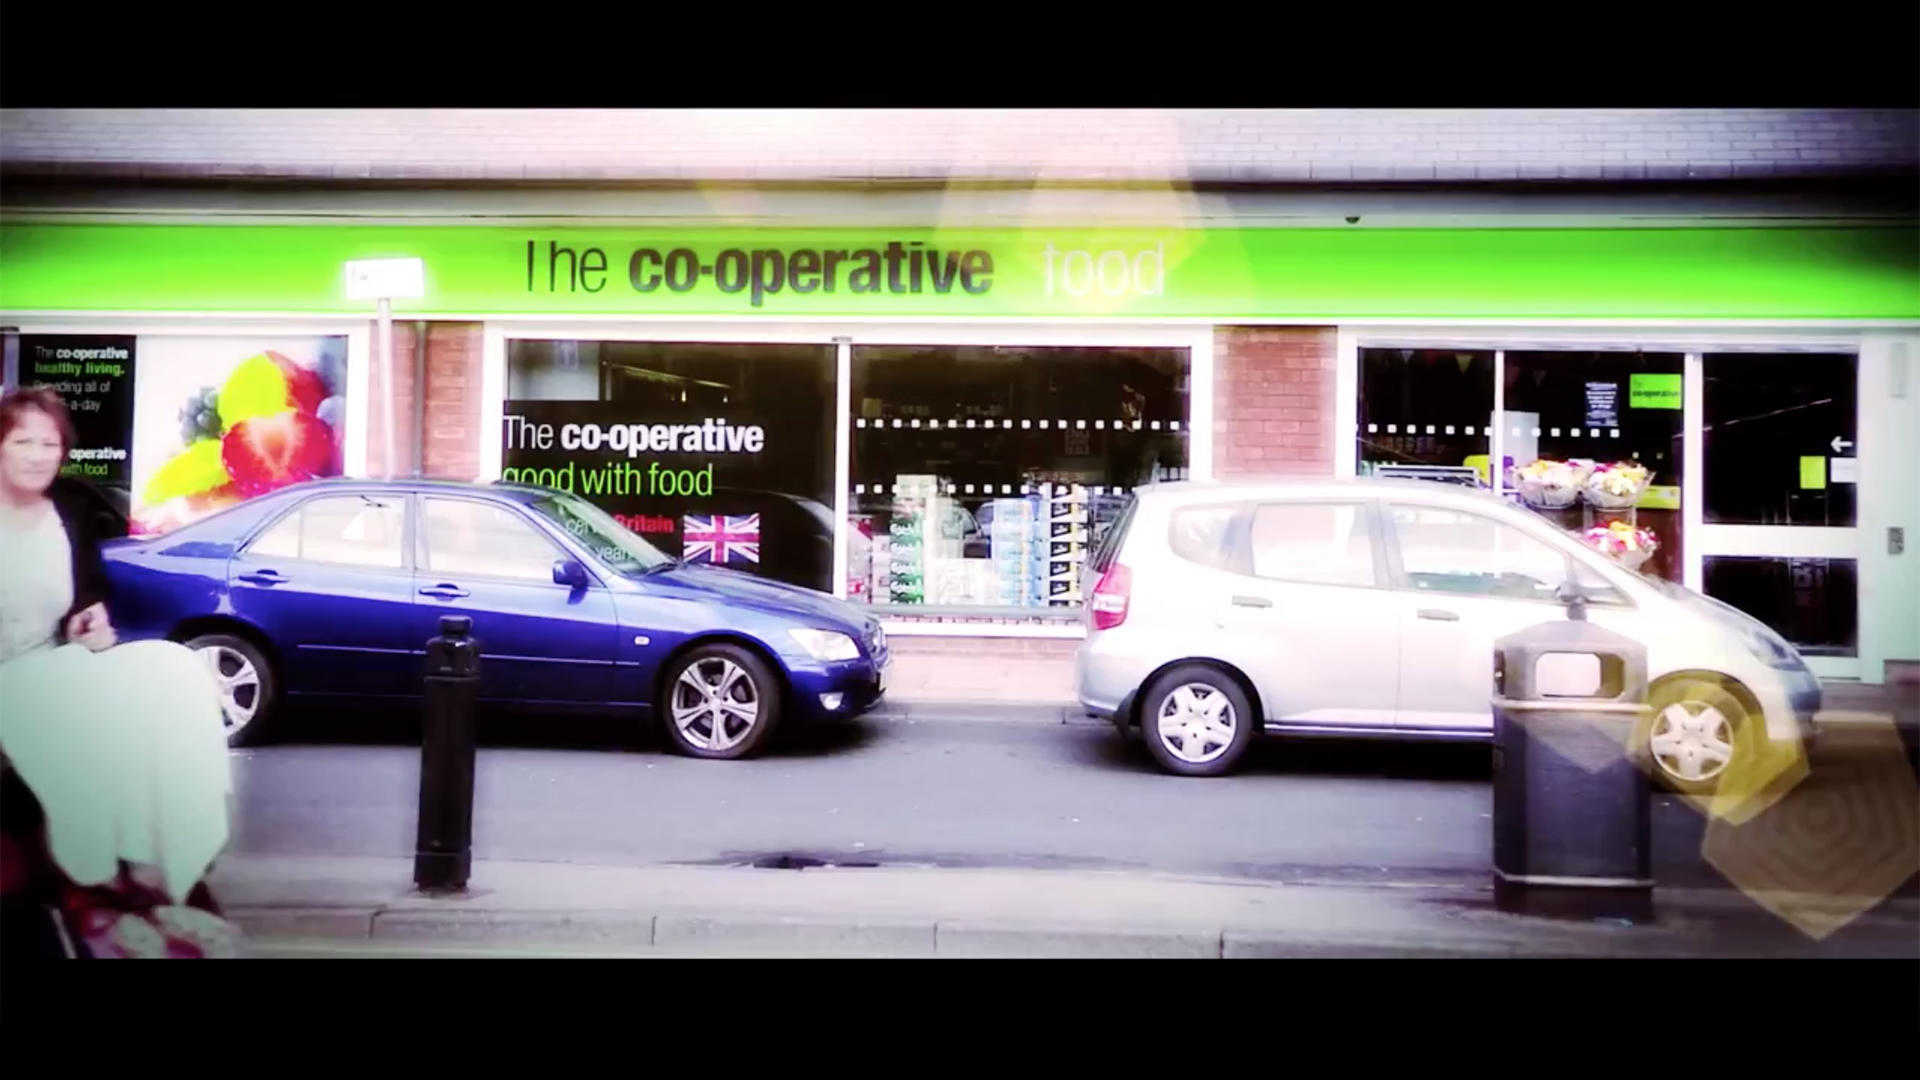 Loyalty and membership promotional campaign for retail group the Co-op